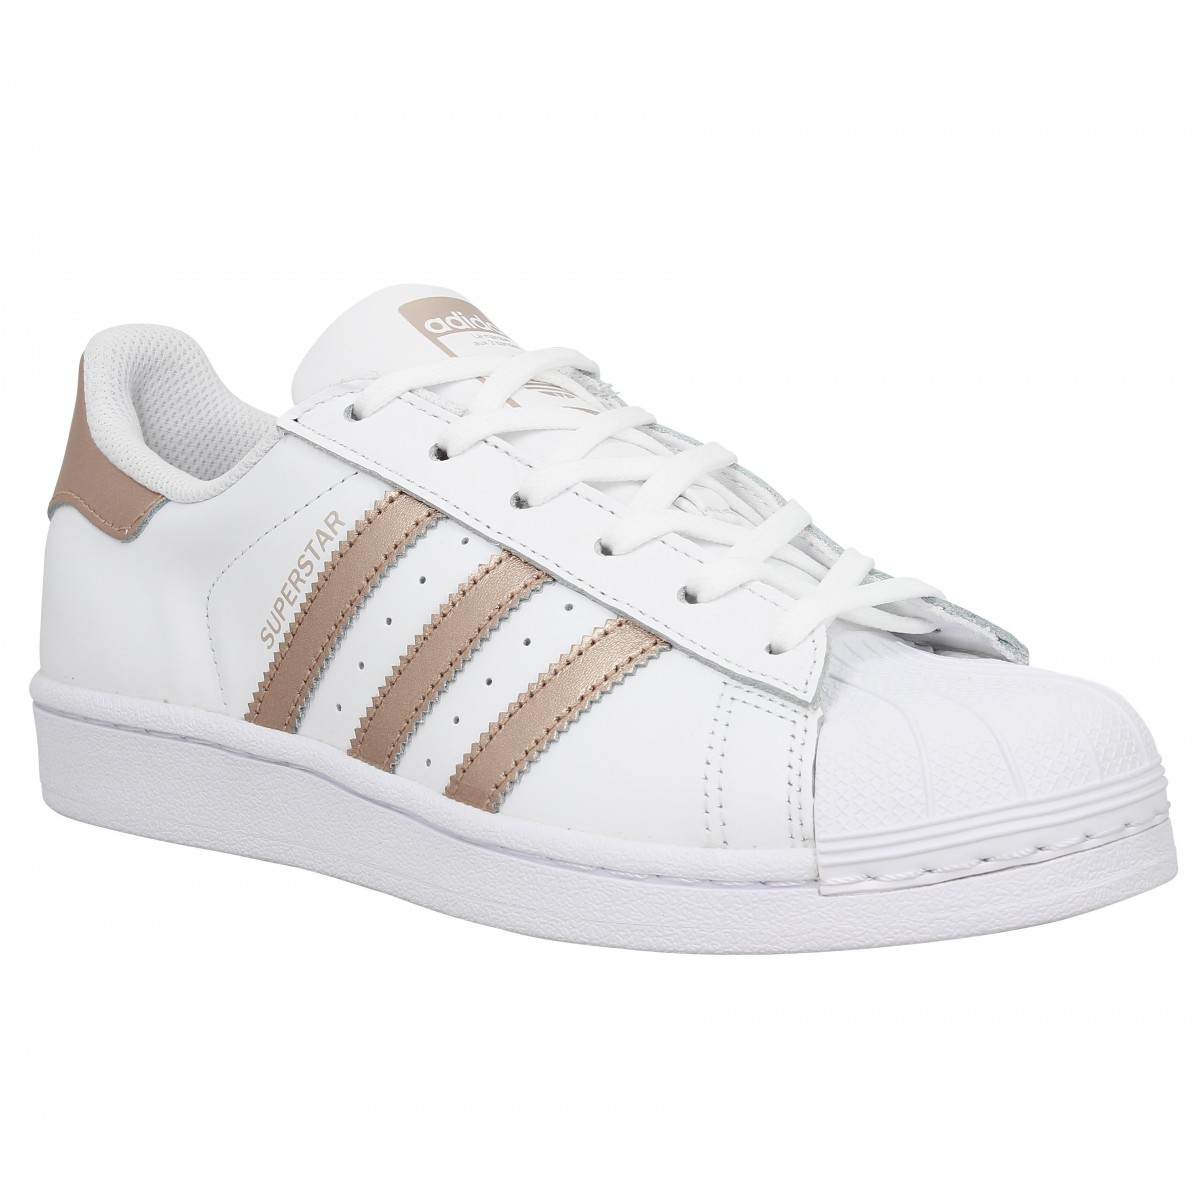 adidas superstar rose gold amazon. Black Bedroom Furniture Sets. Home Design Ideas